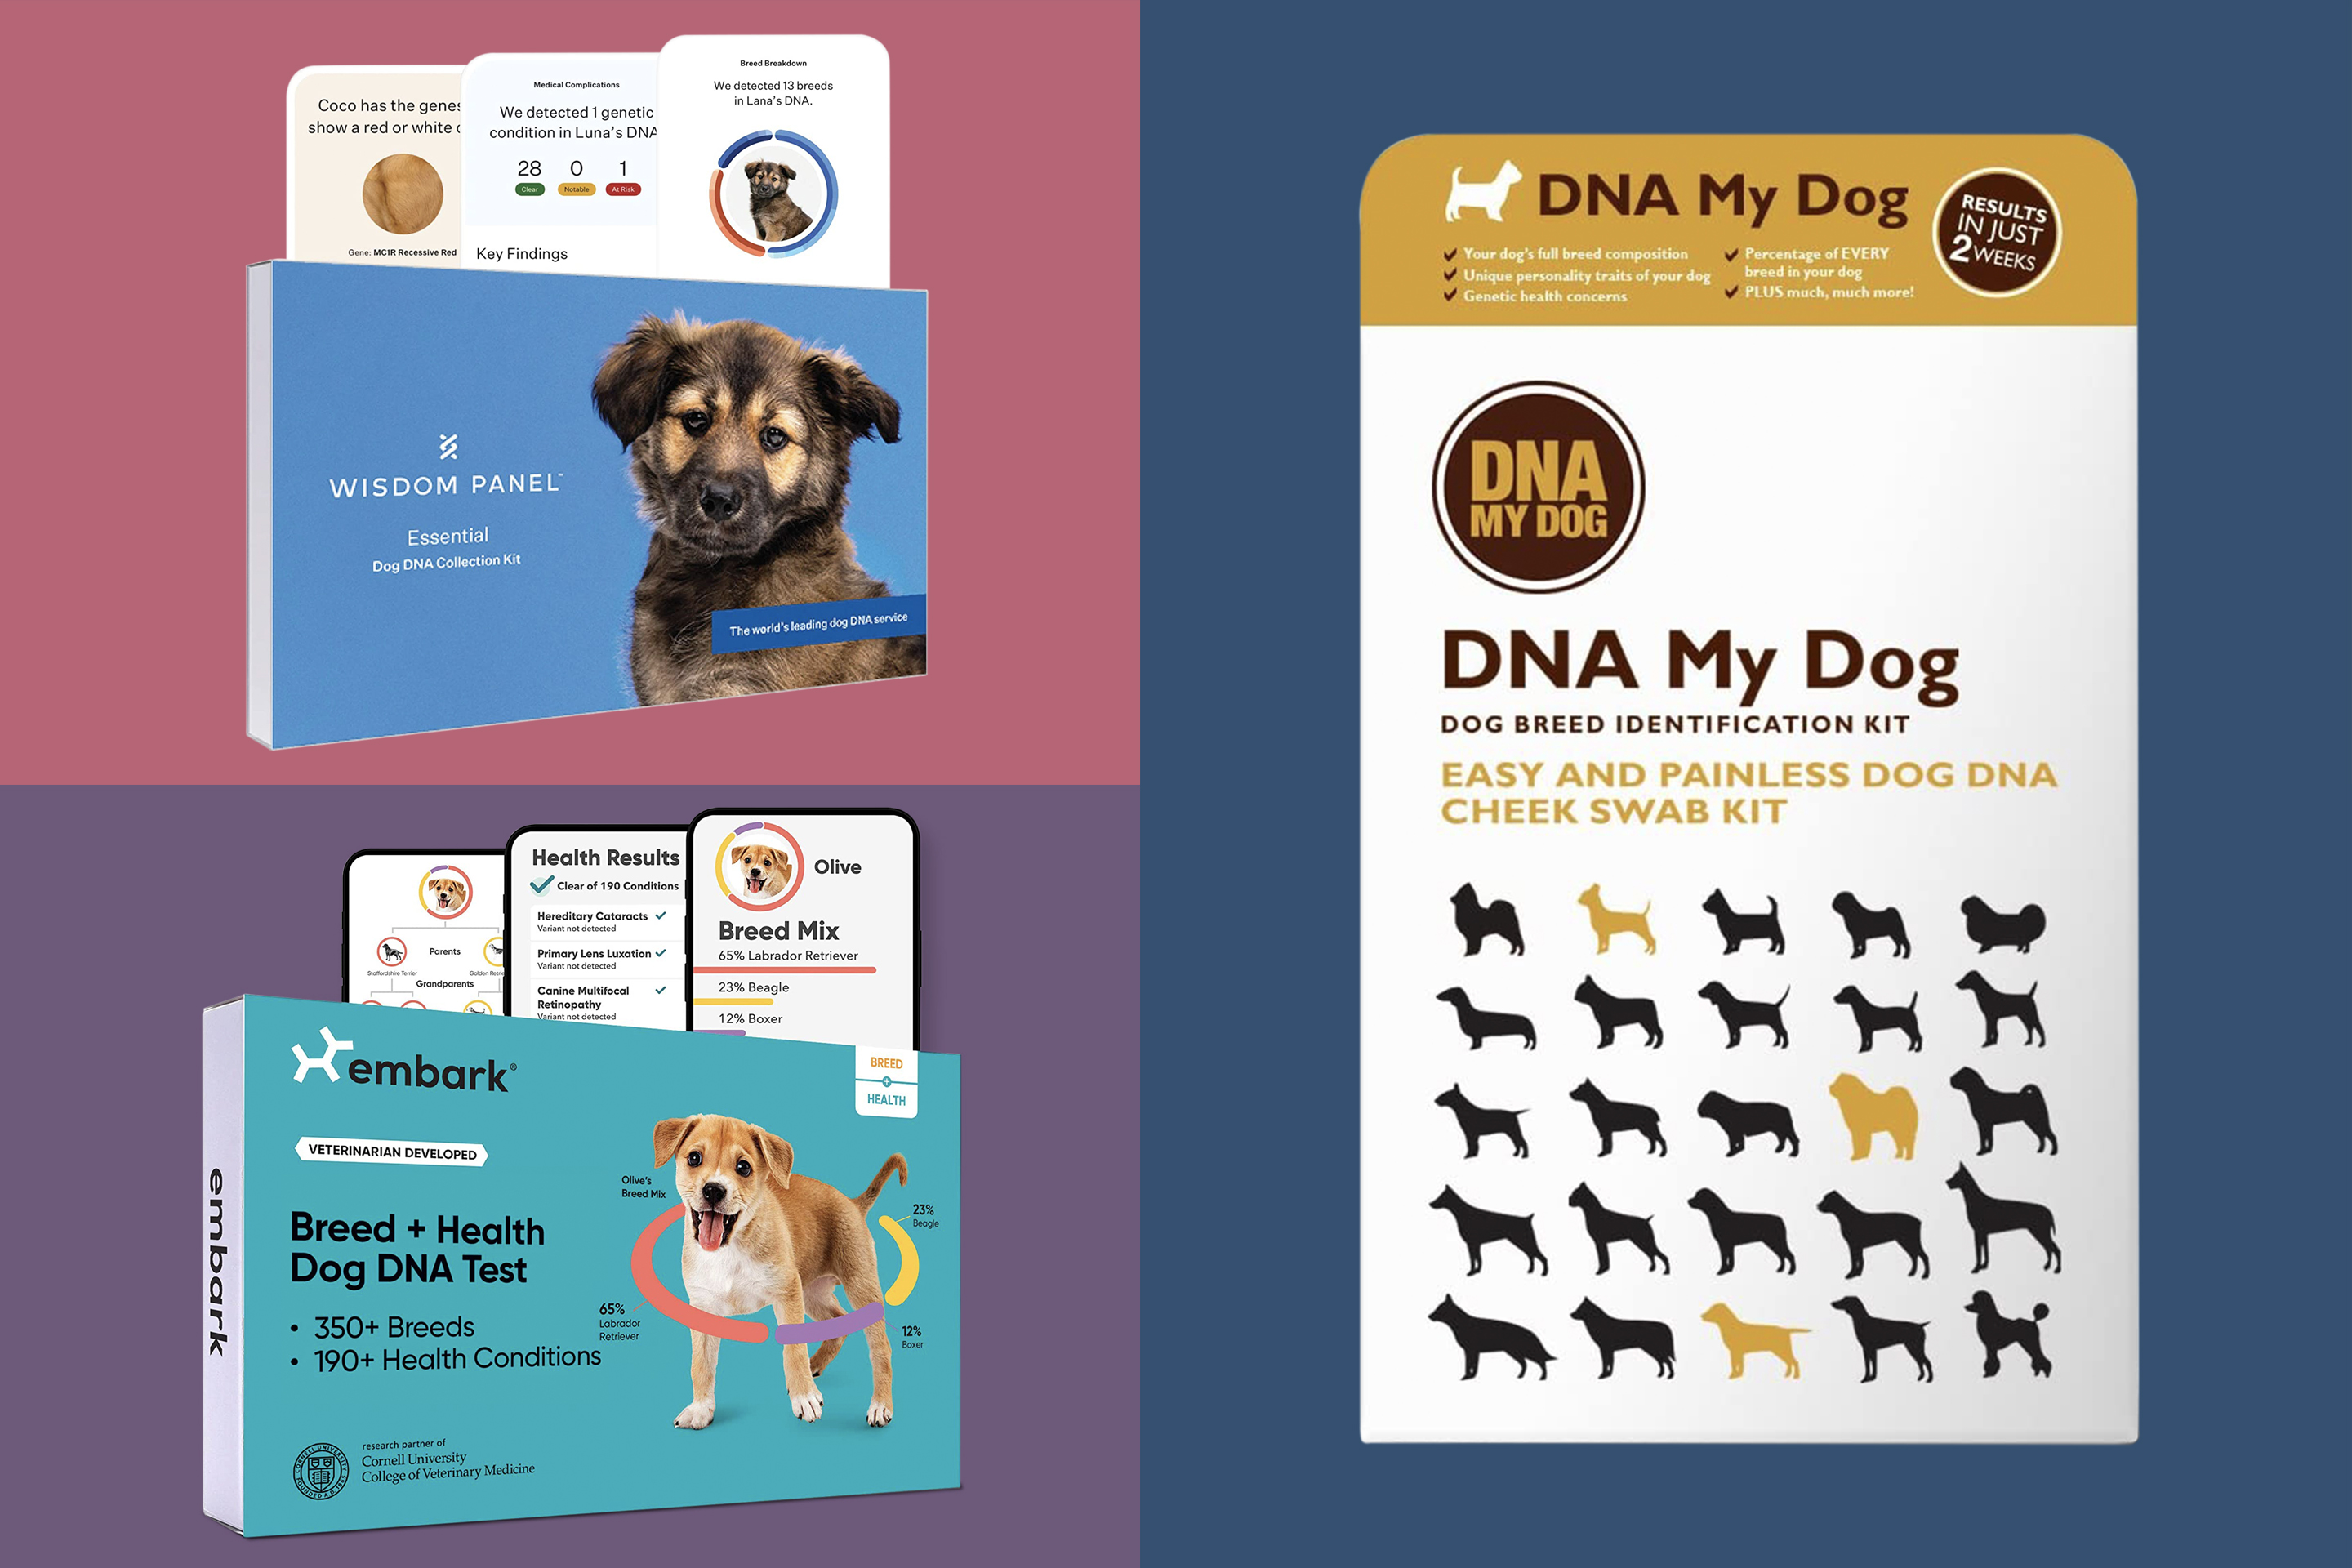 Best Dog DNA Test Kits for 2021 by Money | Money